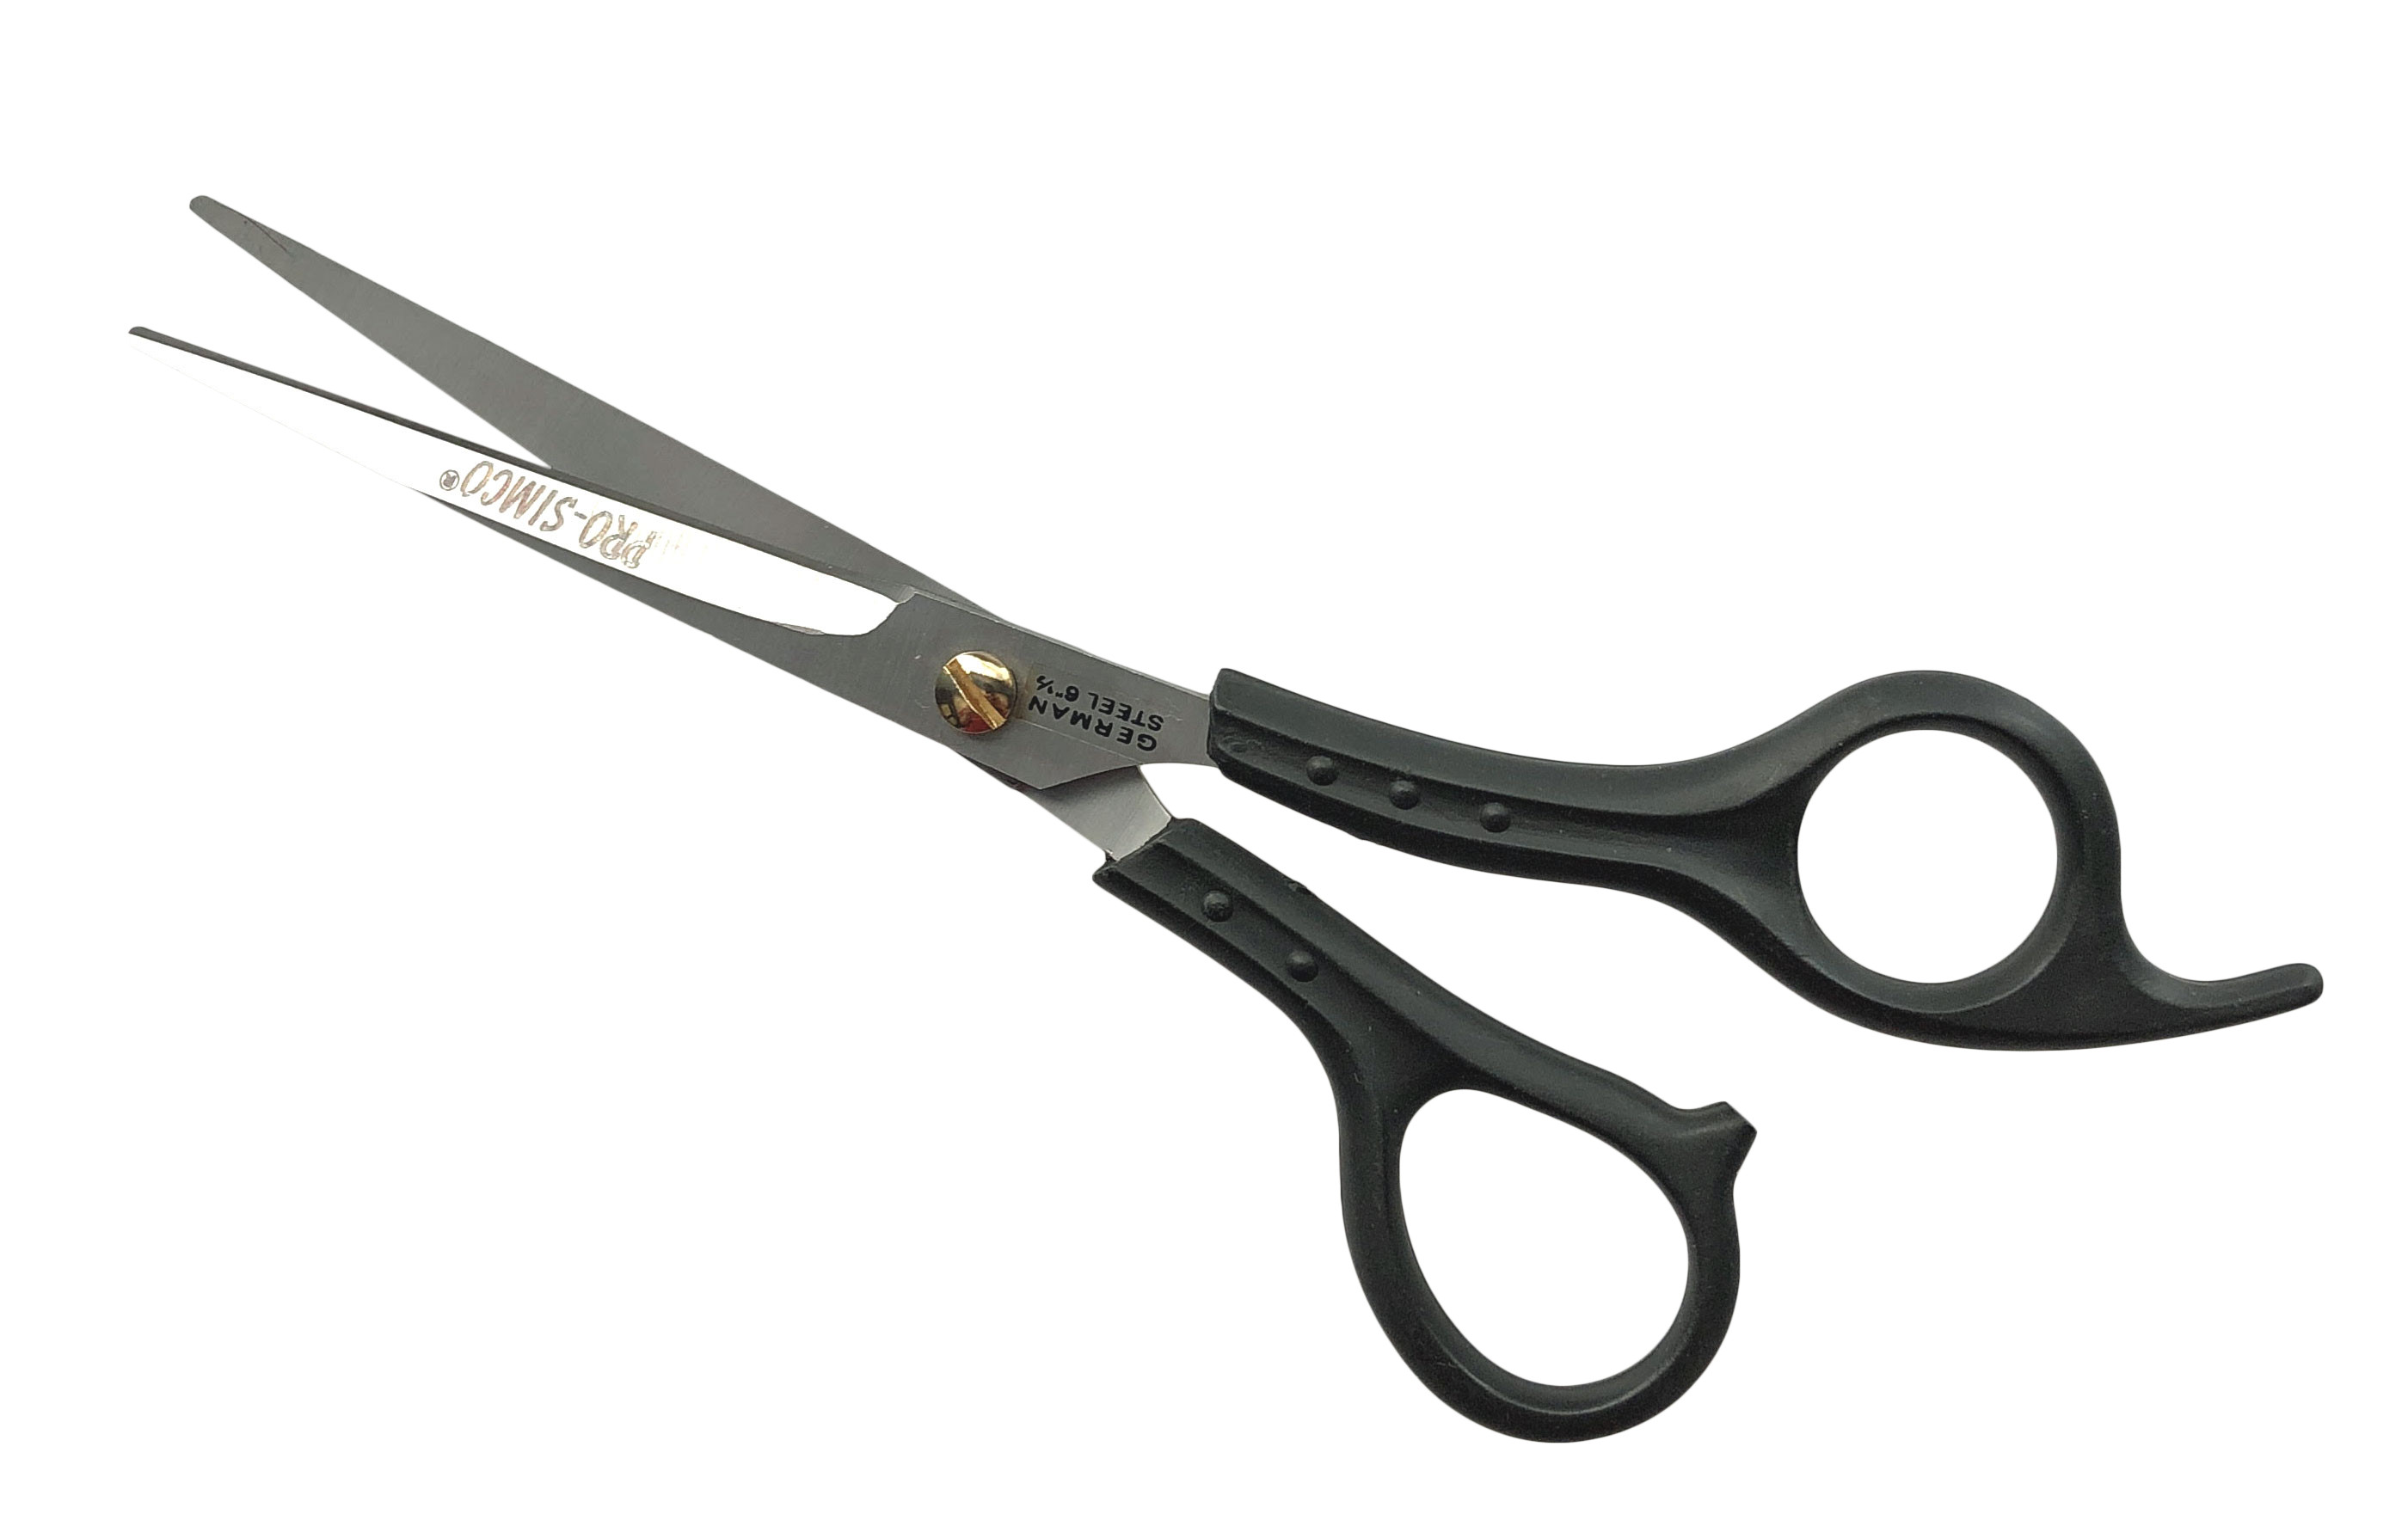 C304BS - German Stainless Steel Barber Scissors 6.5'' ( sm-70823-b ) m